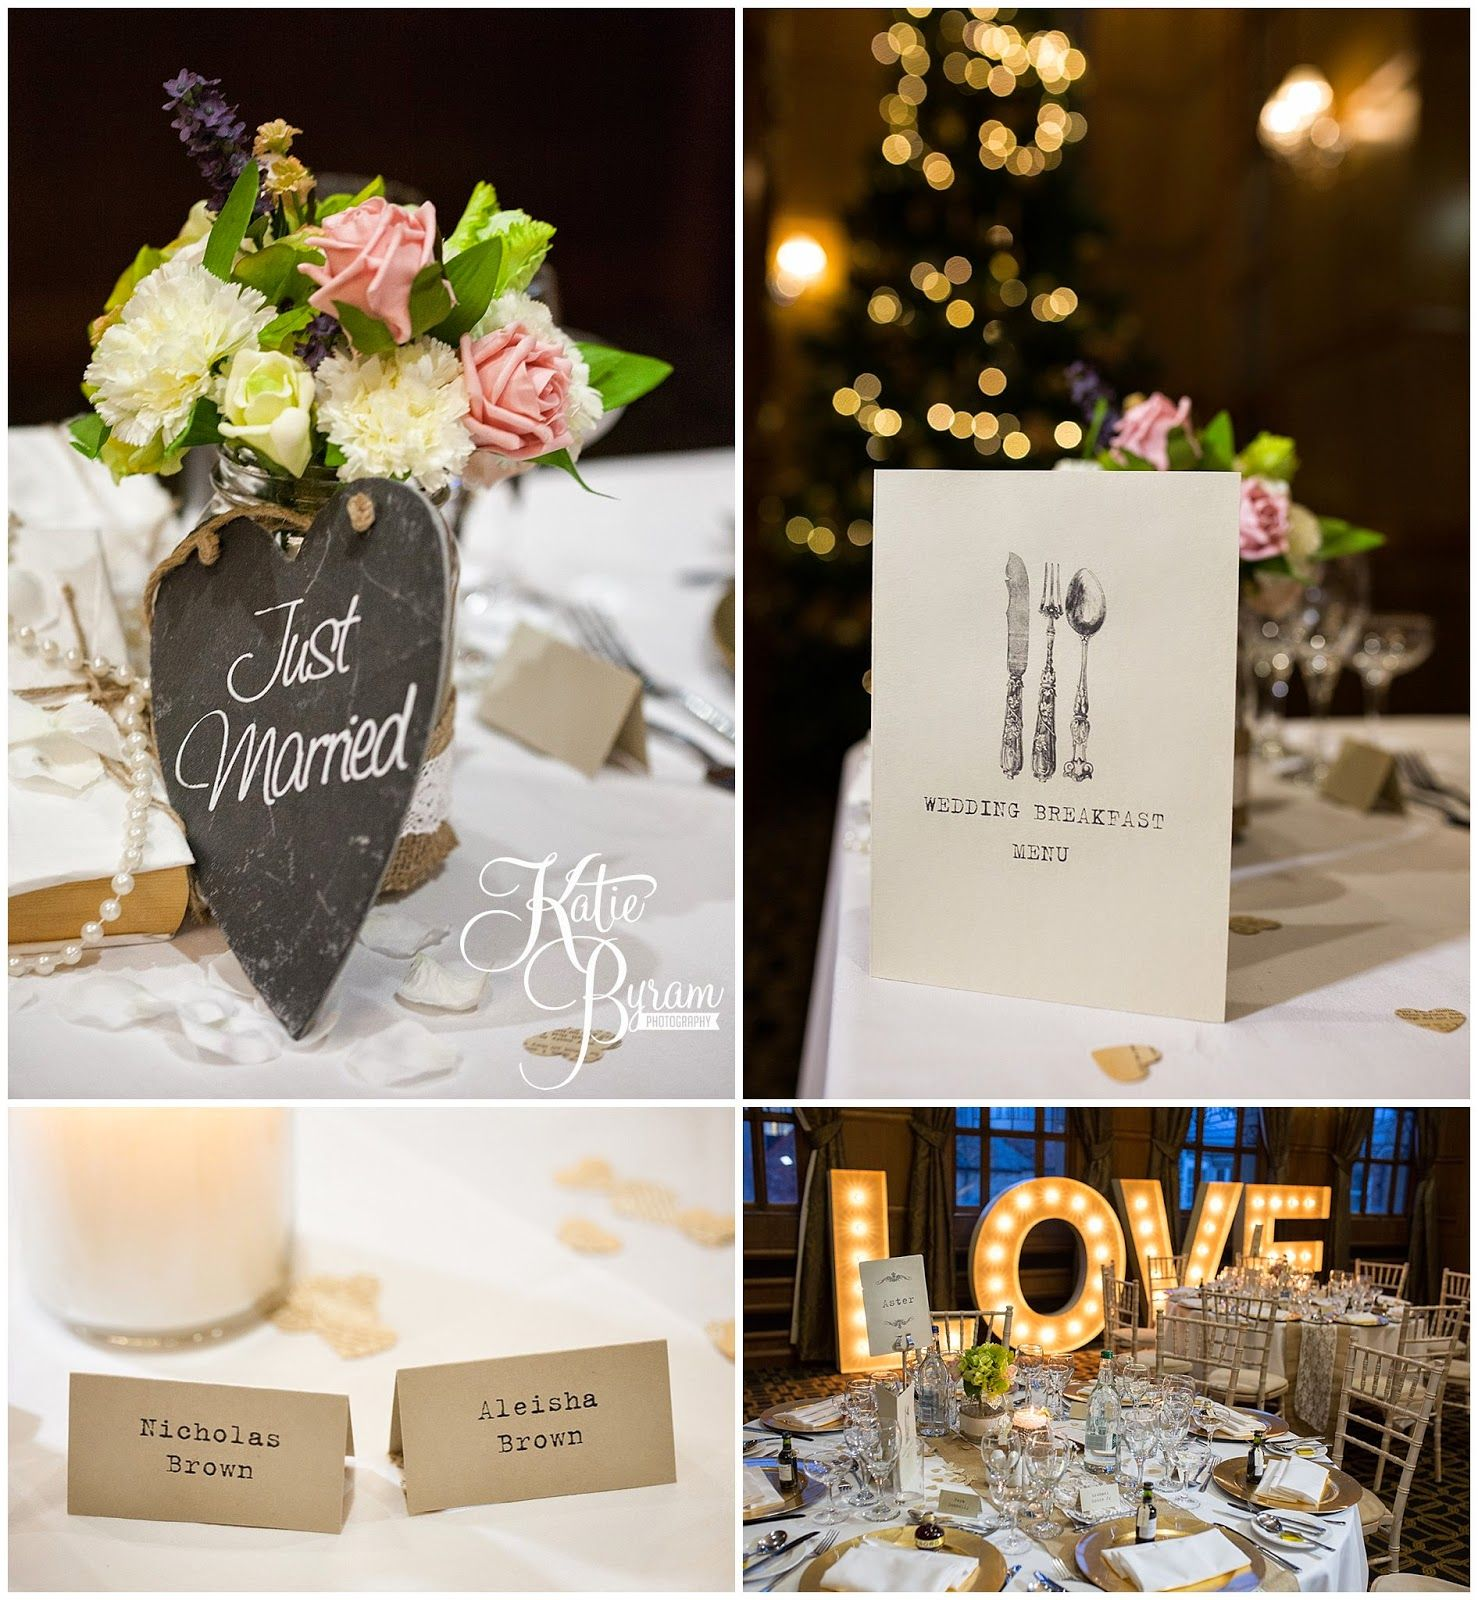 Christmas Party Ideas Newcastle Part - 40: Coco Luminaire, Christmas Wedding, The Vermont Hotel, Wedding Centrepieces,  Newcastle City Centre